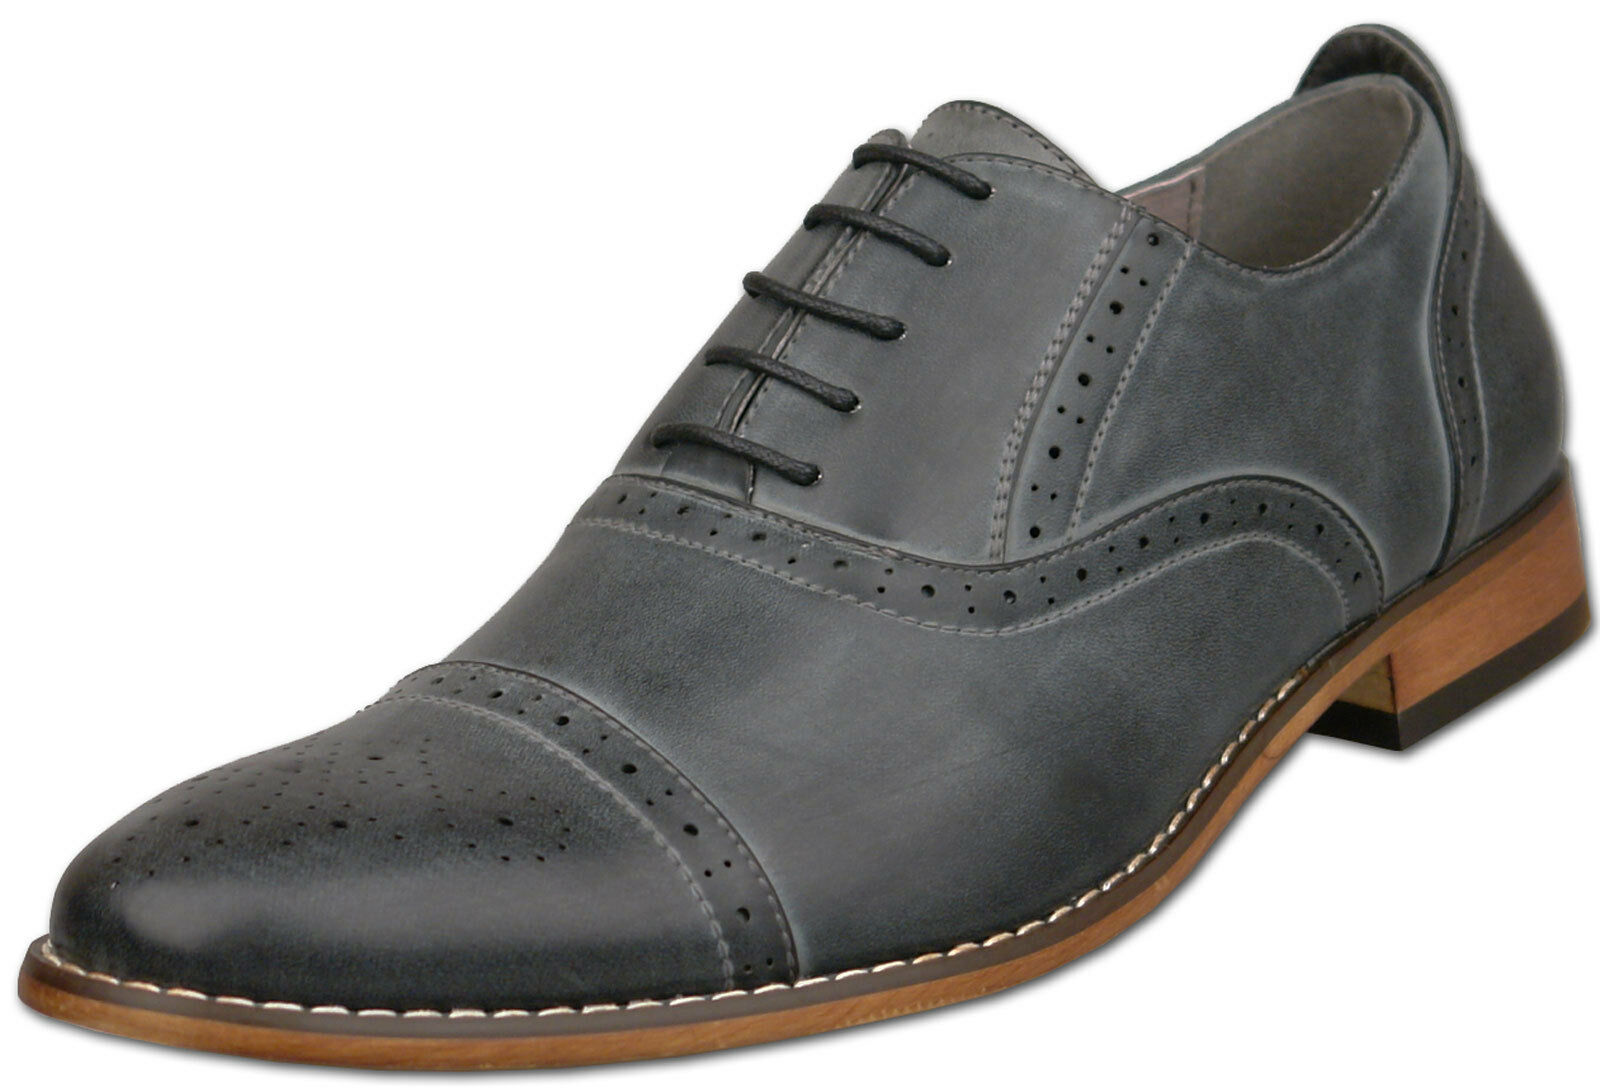 Mens Brand New Grey Leather Lined Capped Brogue Shoes Size 6 7 8 9 10 11 12